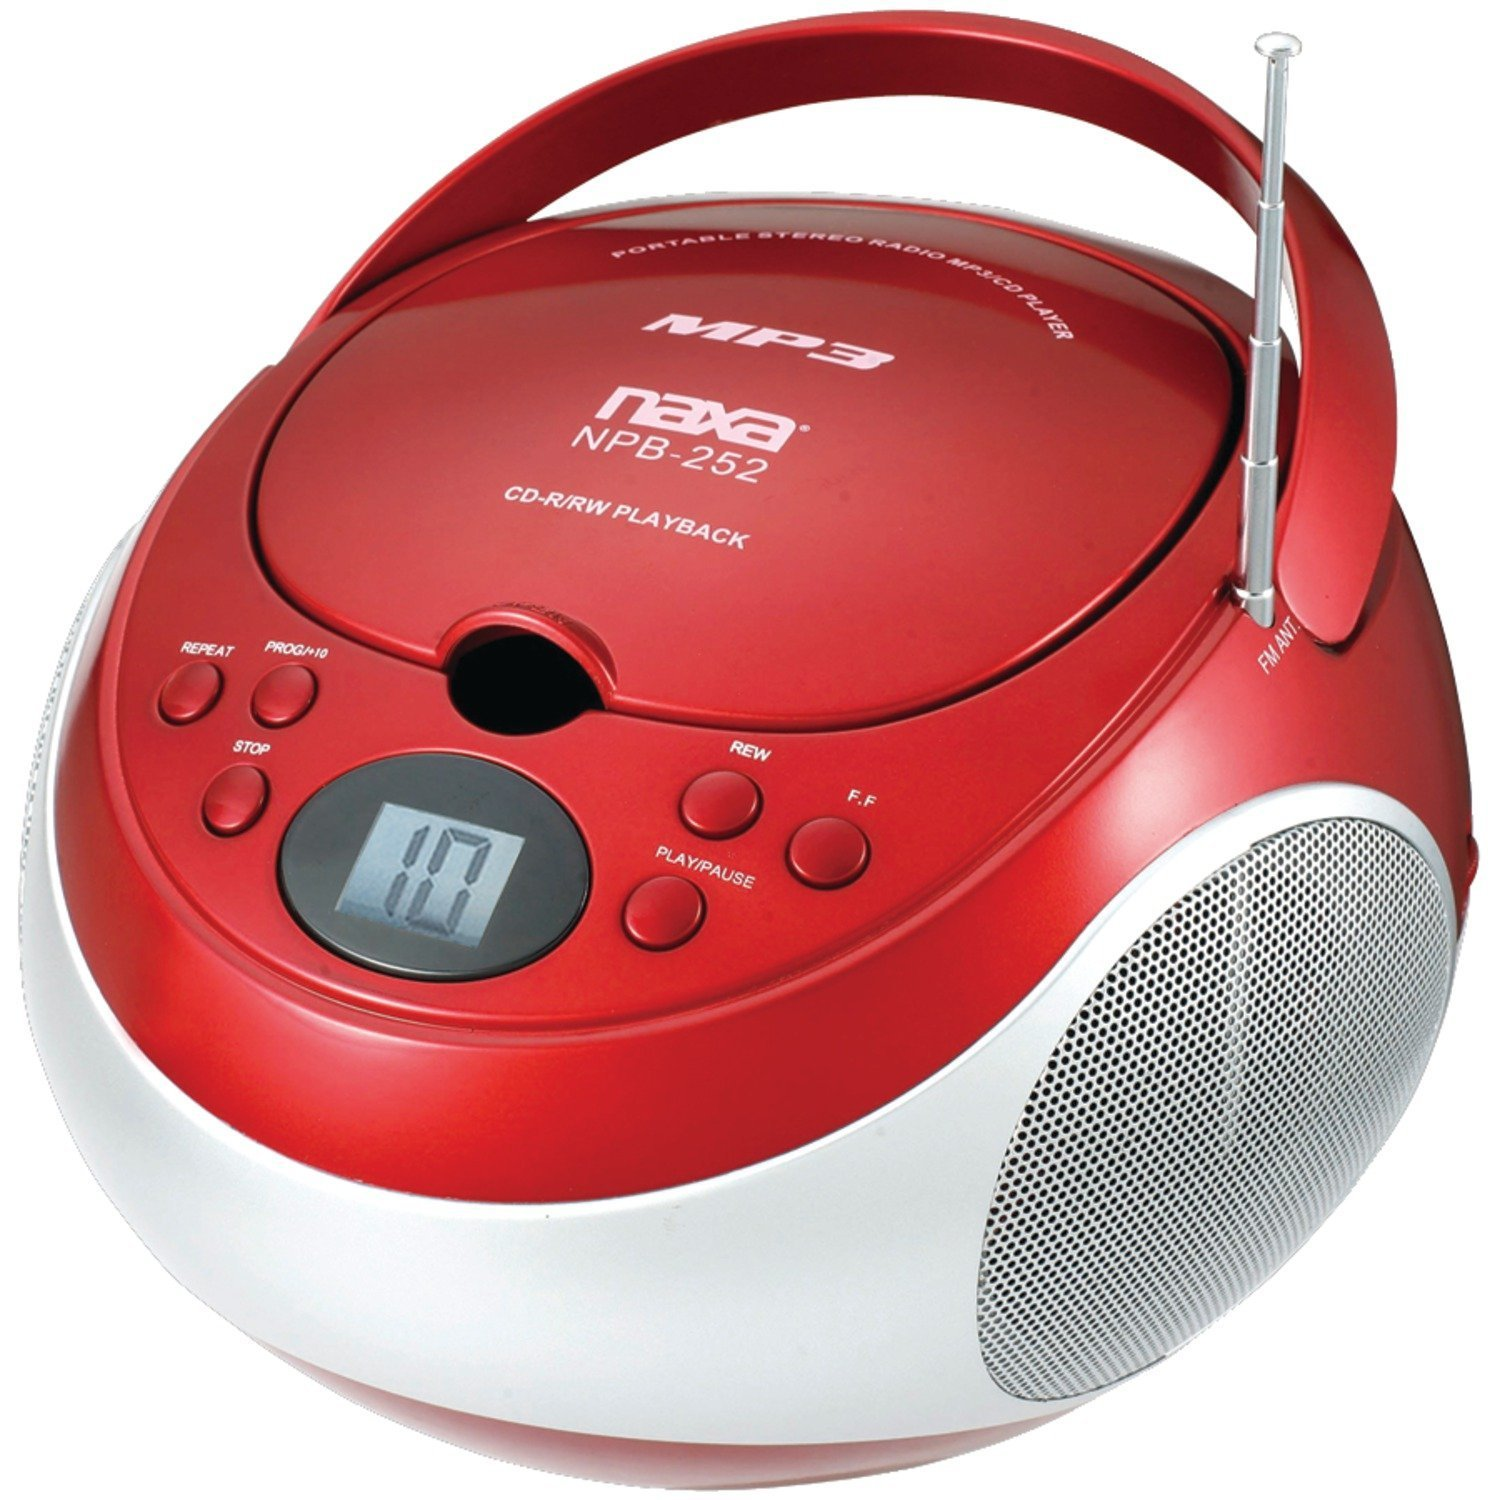 Radio Stereo System, Electronics Portable Mp3/cd Player Fm Am Stereo Radio, Red